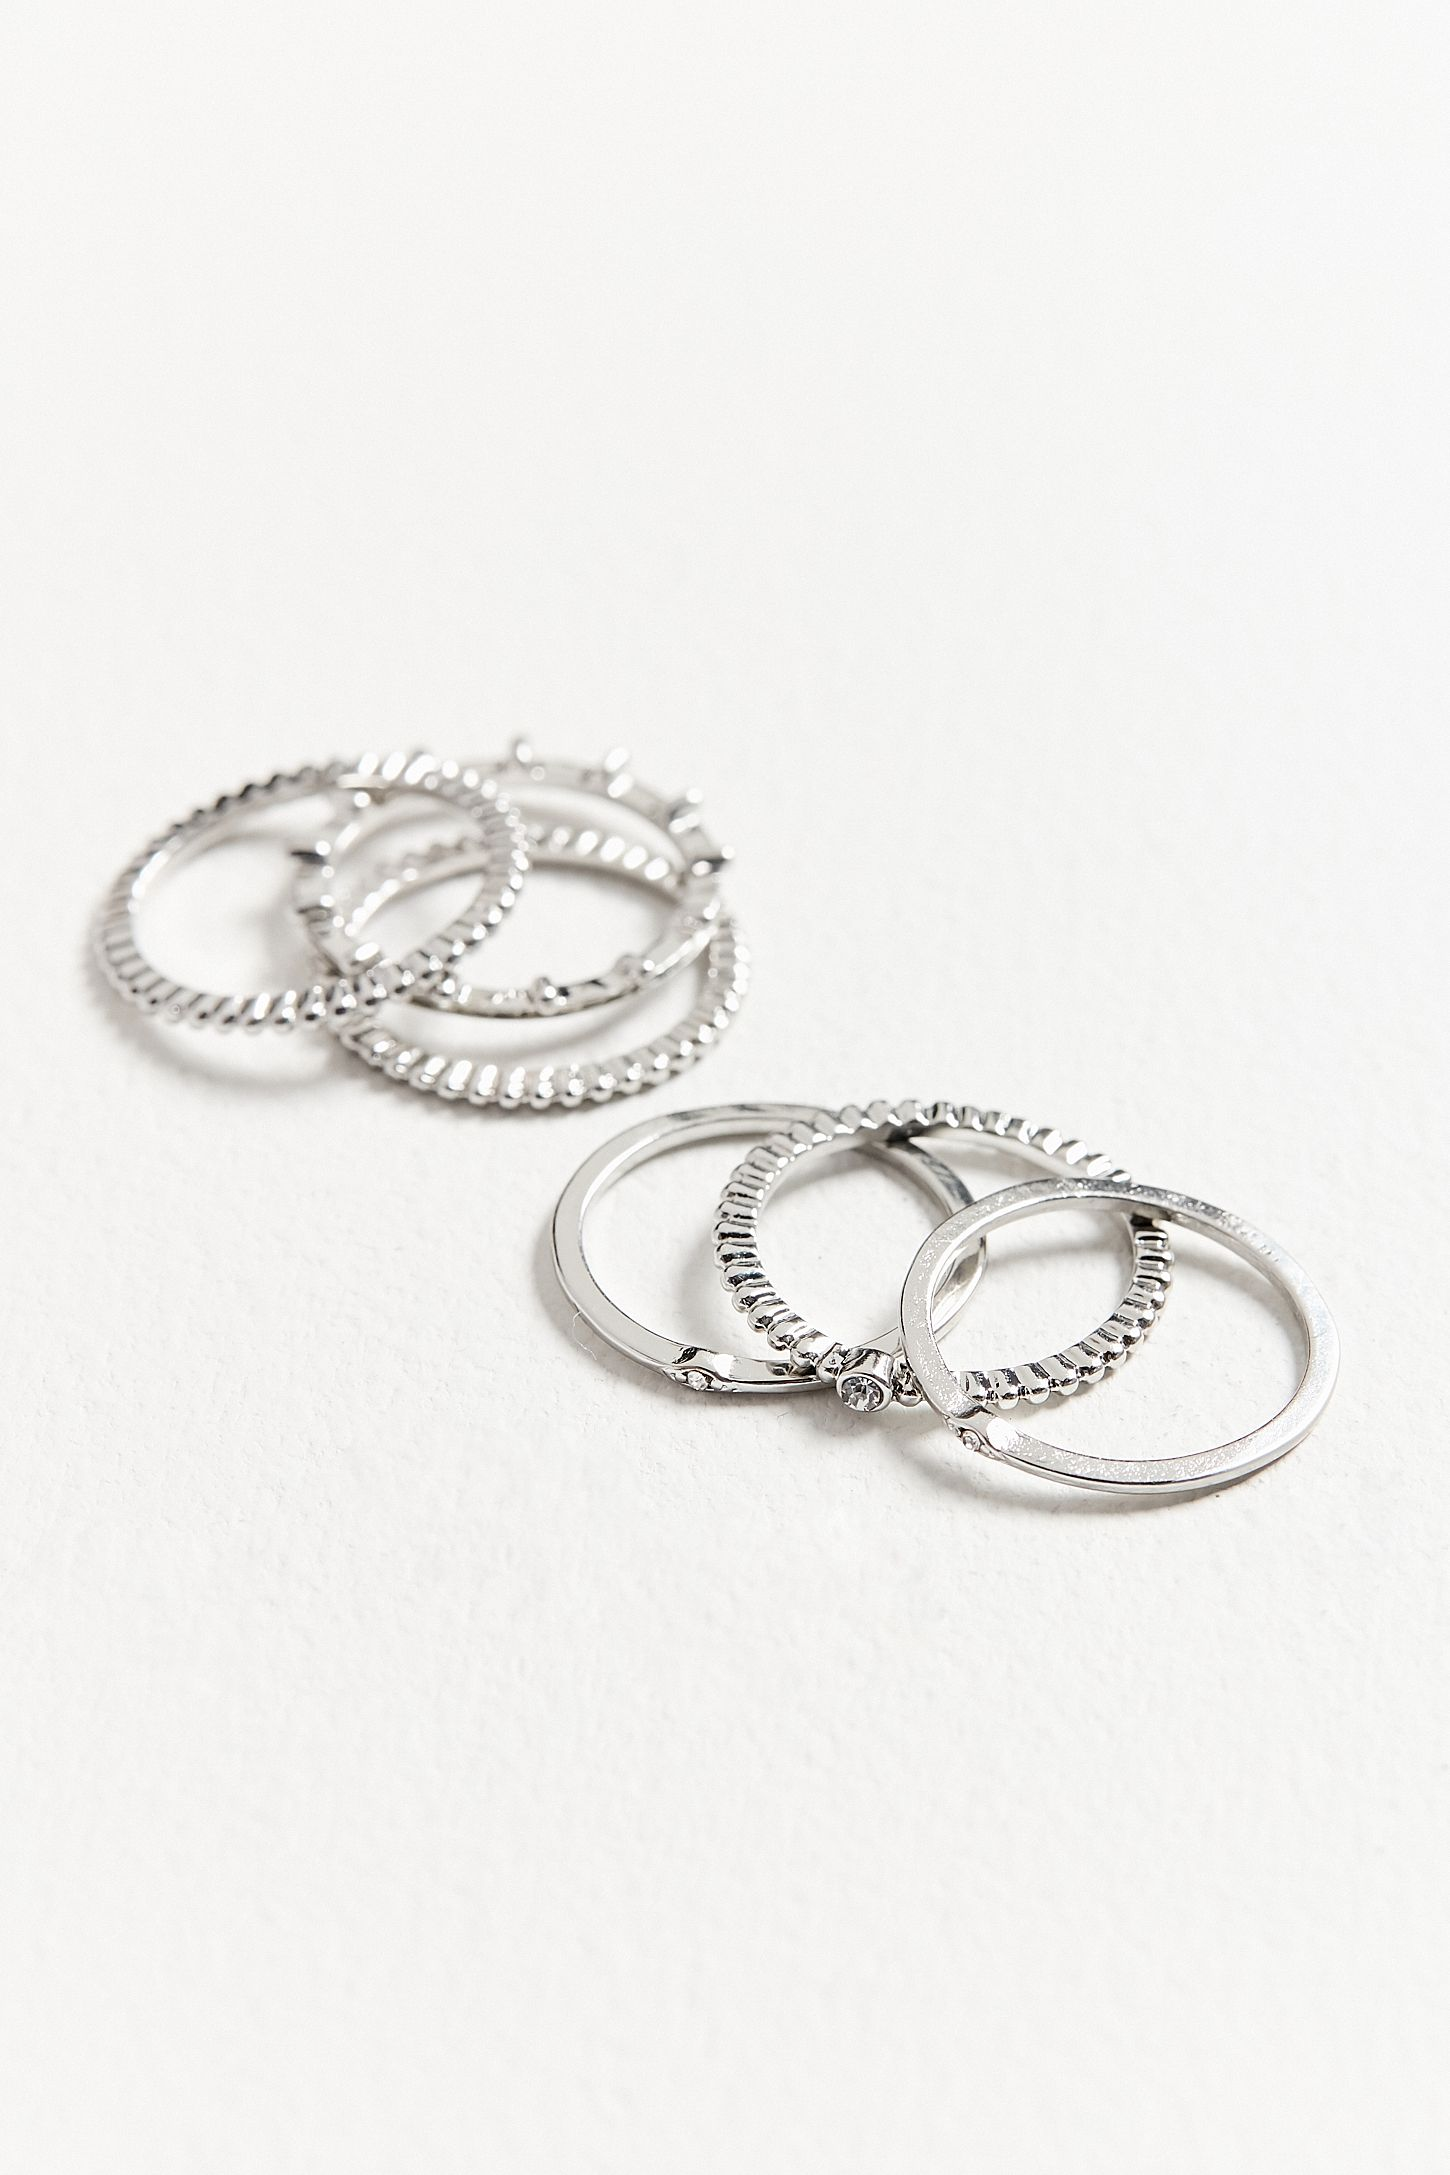 Essential Stacking Ring Set Urban Outfitters Stocking 9919 Slide View 2